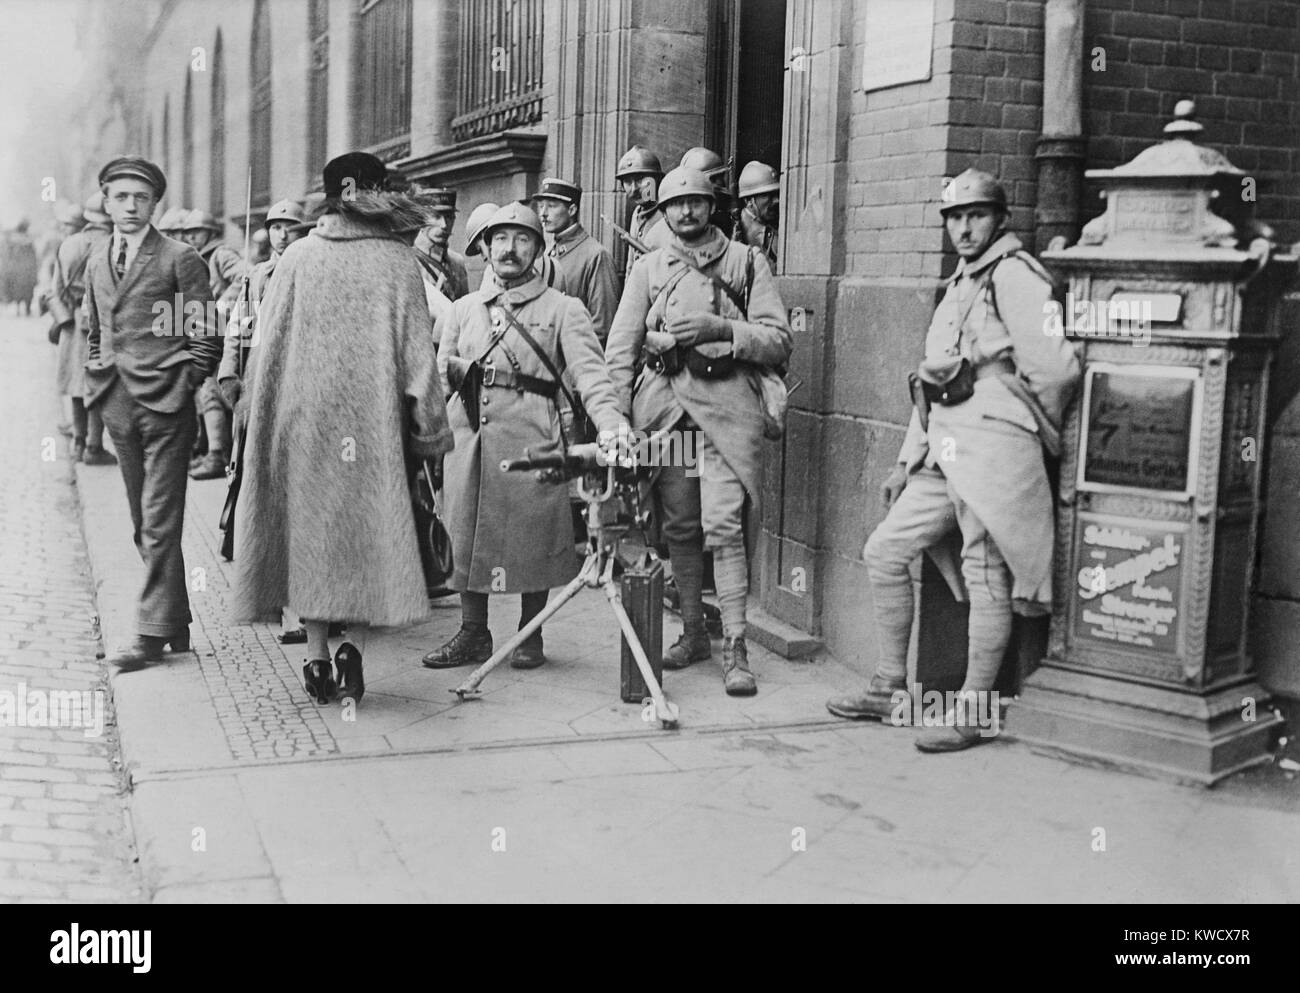 French soldiers with a machine gun stationed at the post office in Essen, Germany, 1923. The occupation lasted until - Stock Image